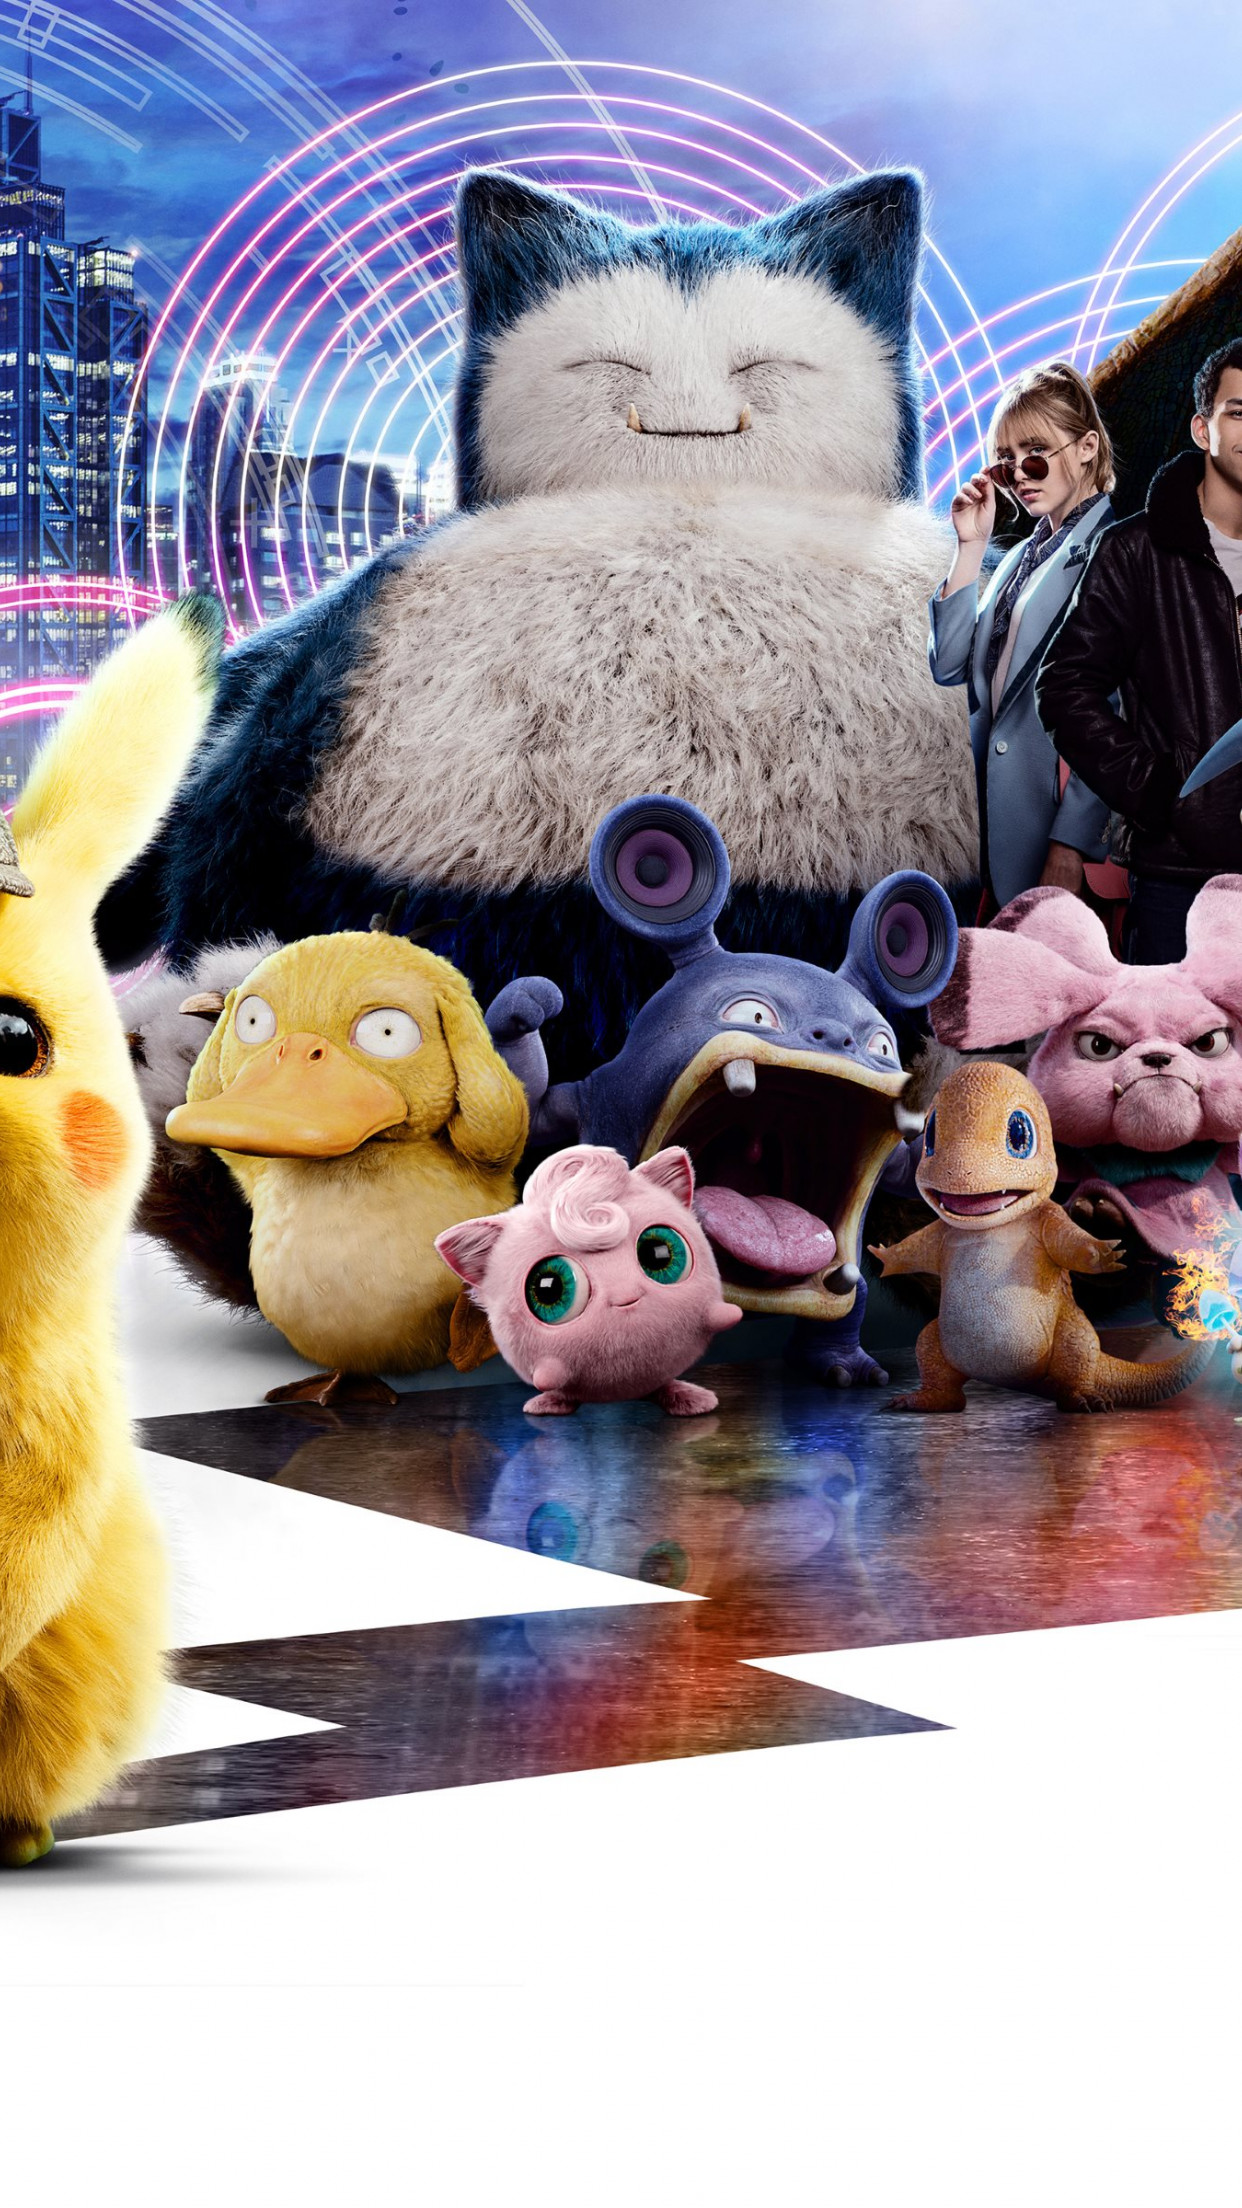 Download Wallpaper Pokemon Detective Pikachu 1242x2208